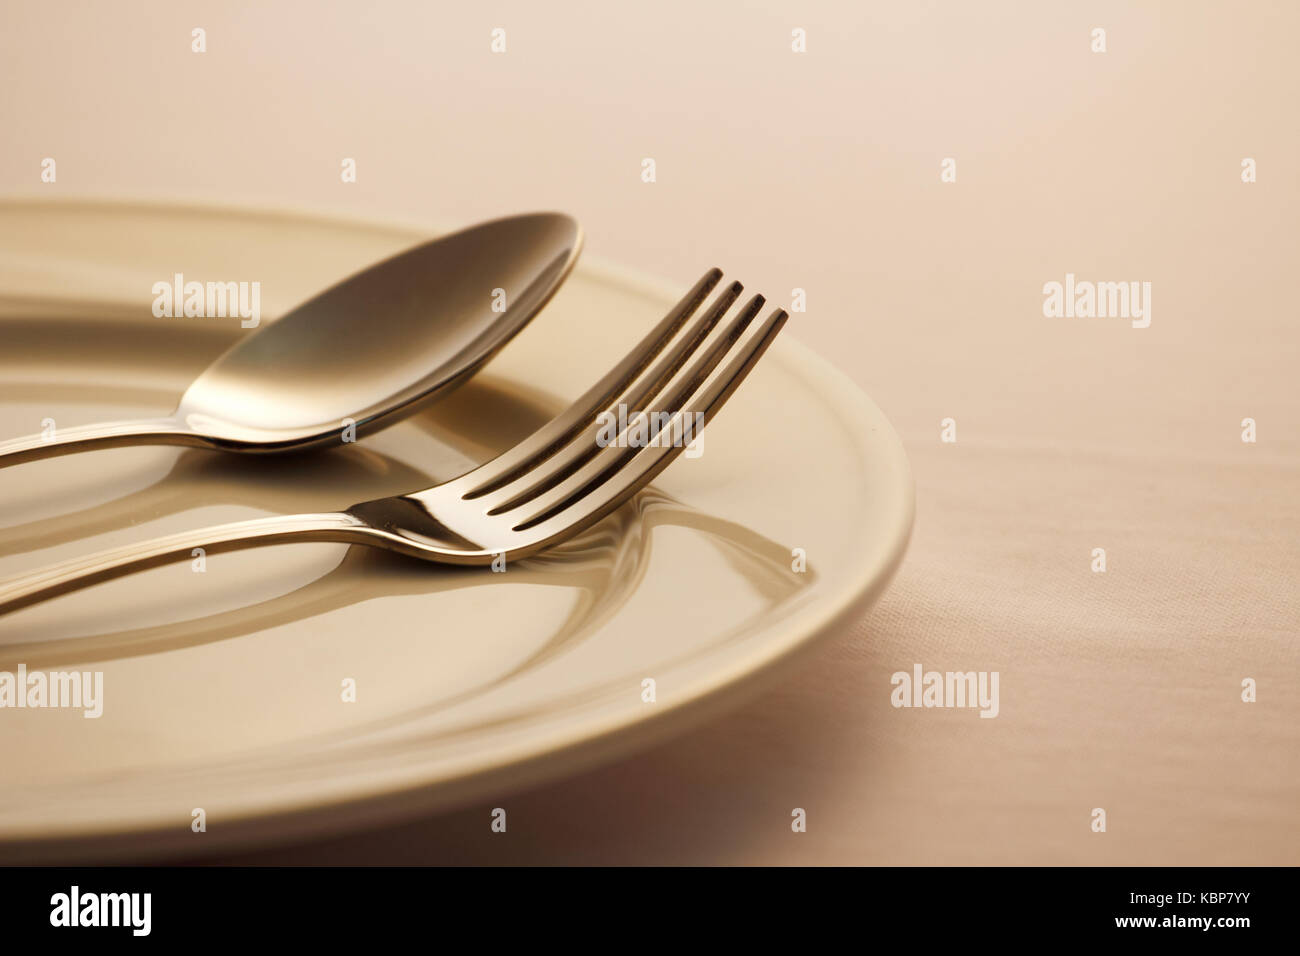 Spoon and fork on the dish - Stock Image